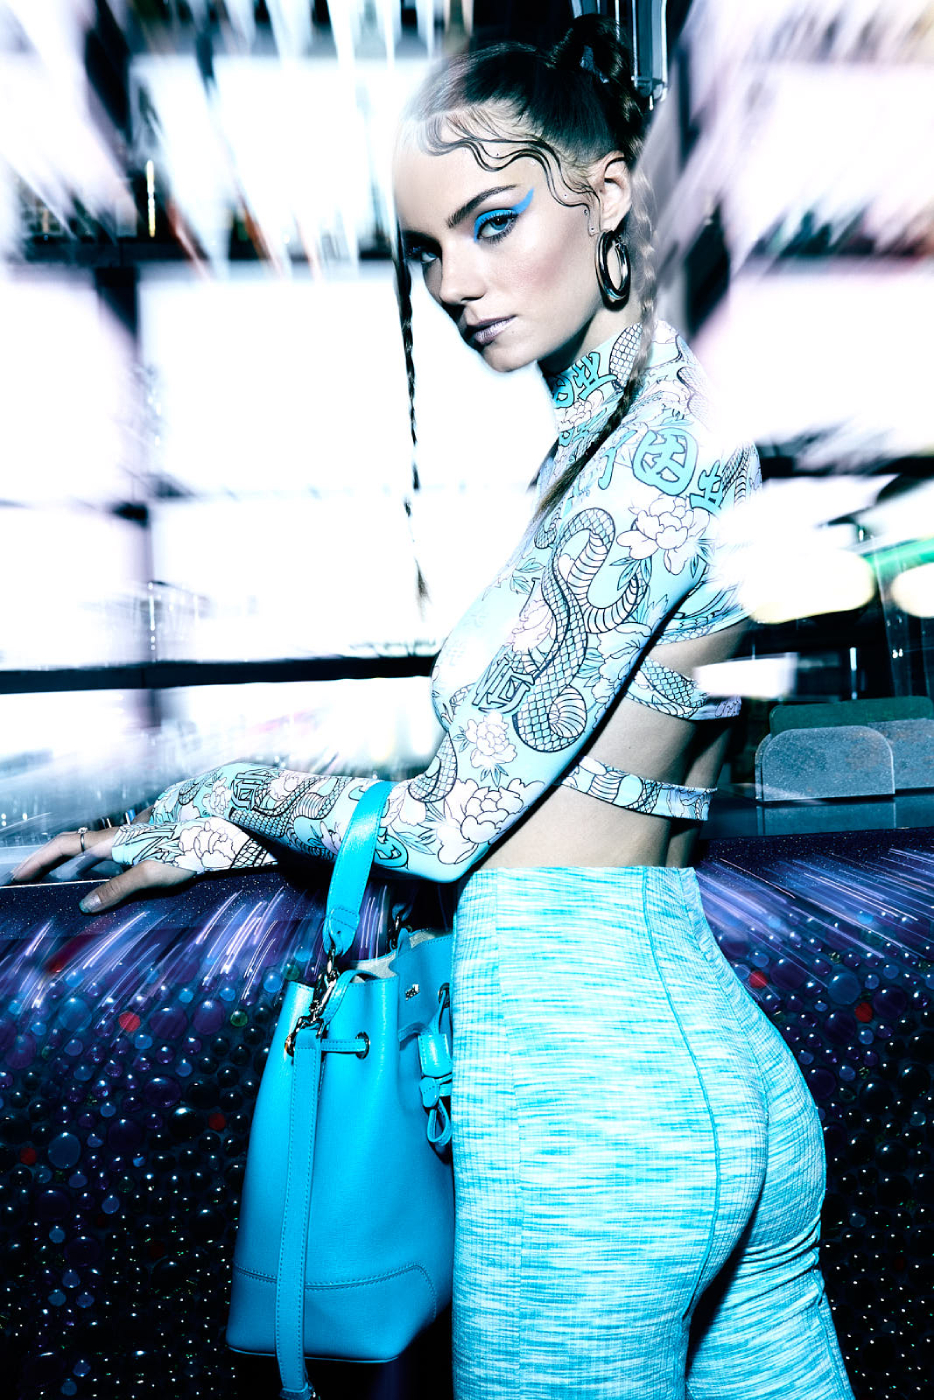 Model Reka Fedra in front of a backlight bar shot by Illya Ovchar for Glamour Hungary